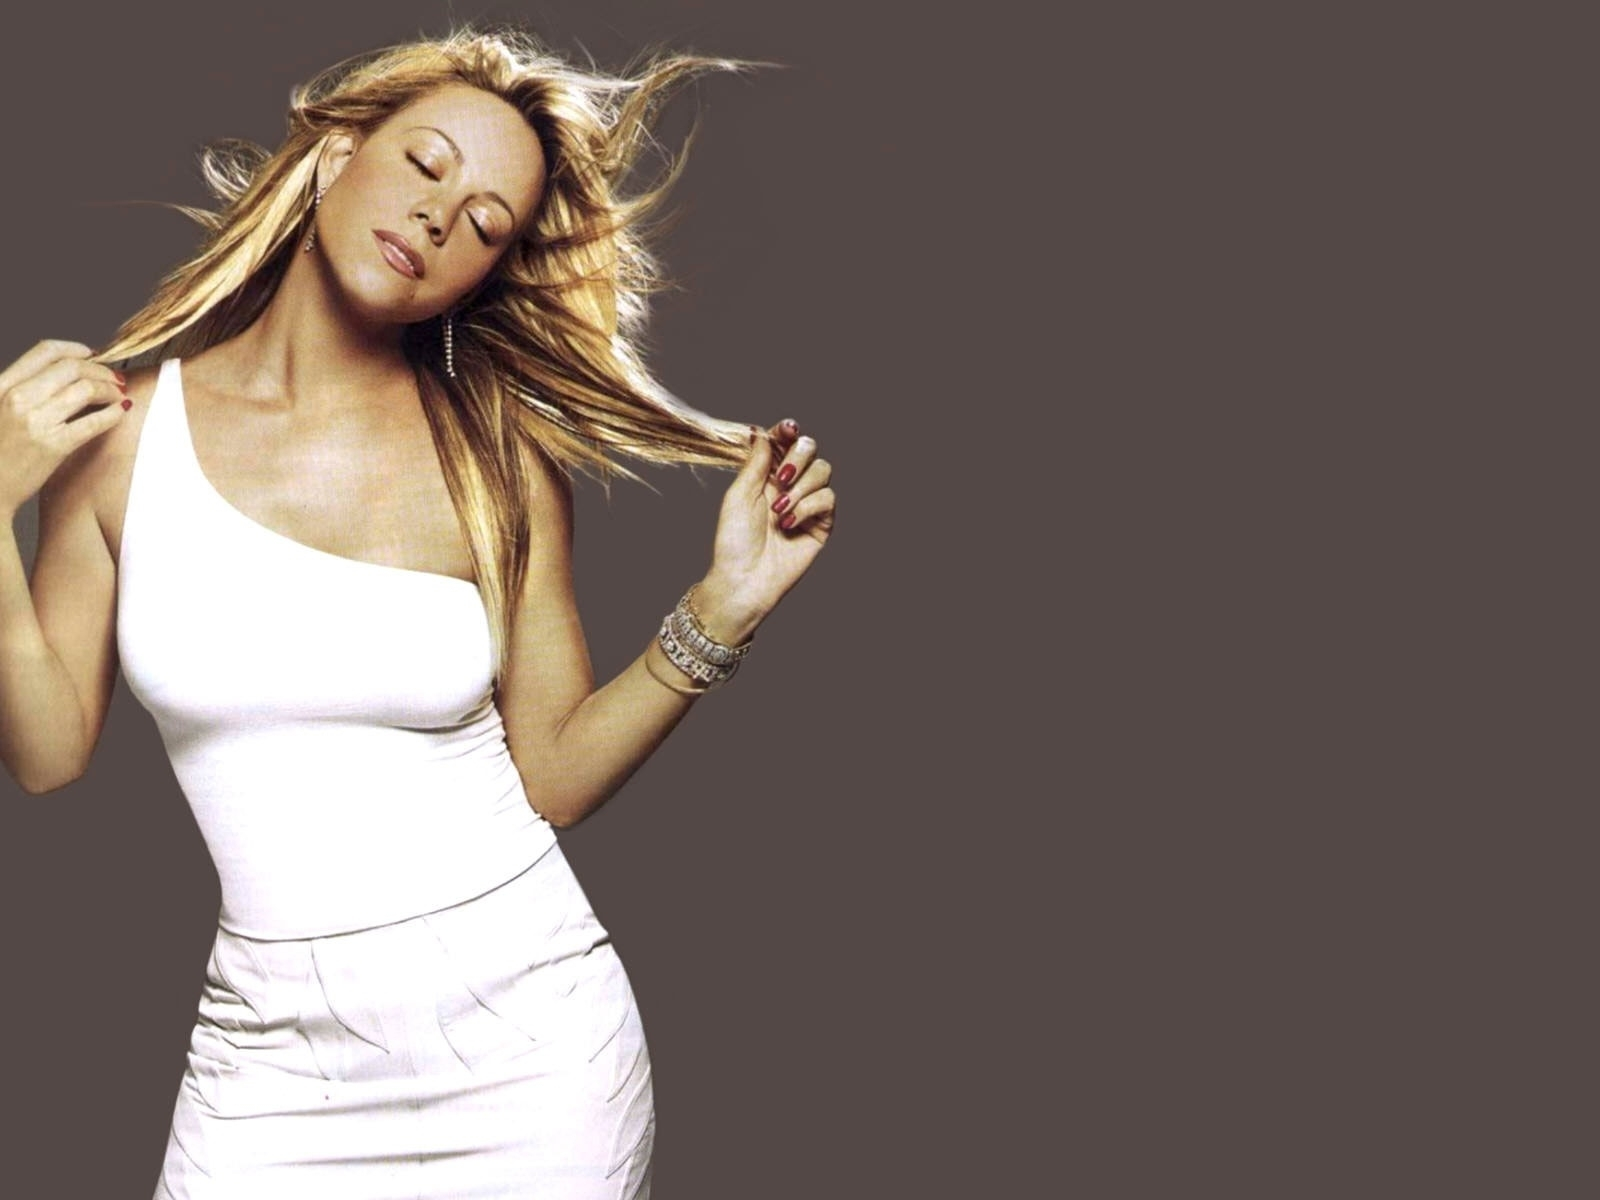 mariah carey wallpaper high quality and definition | hd wallpapers